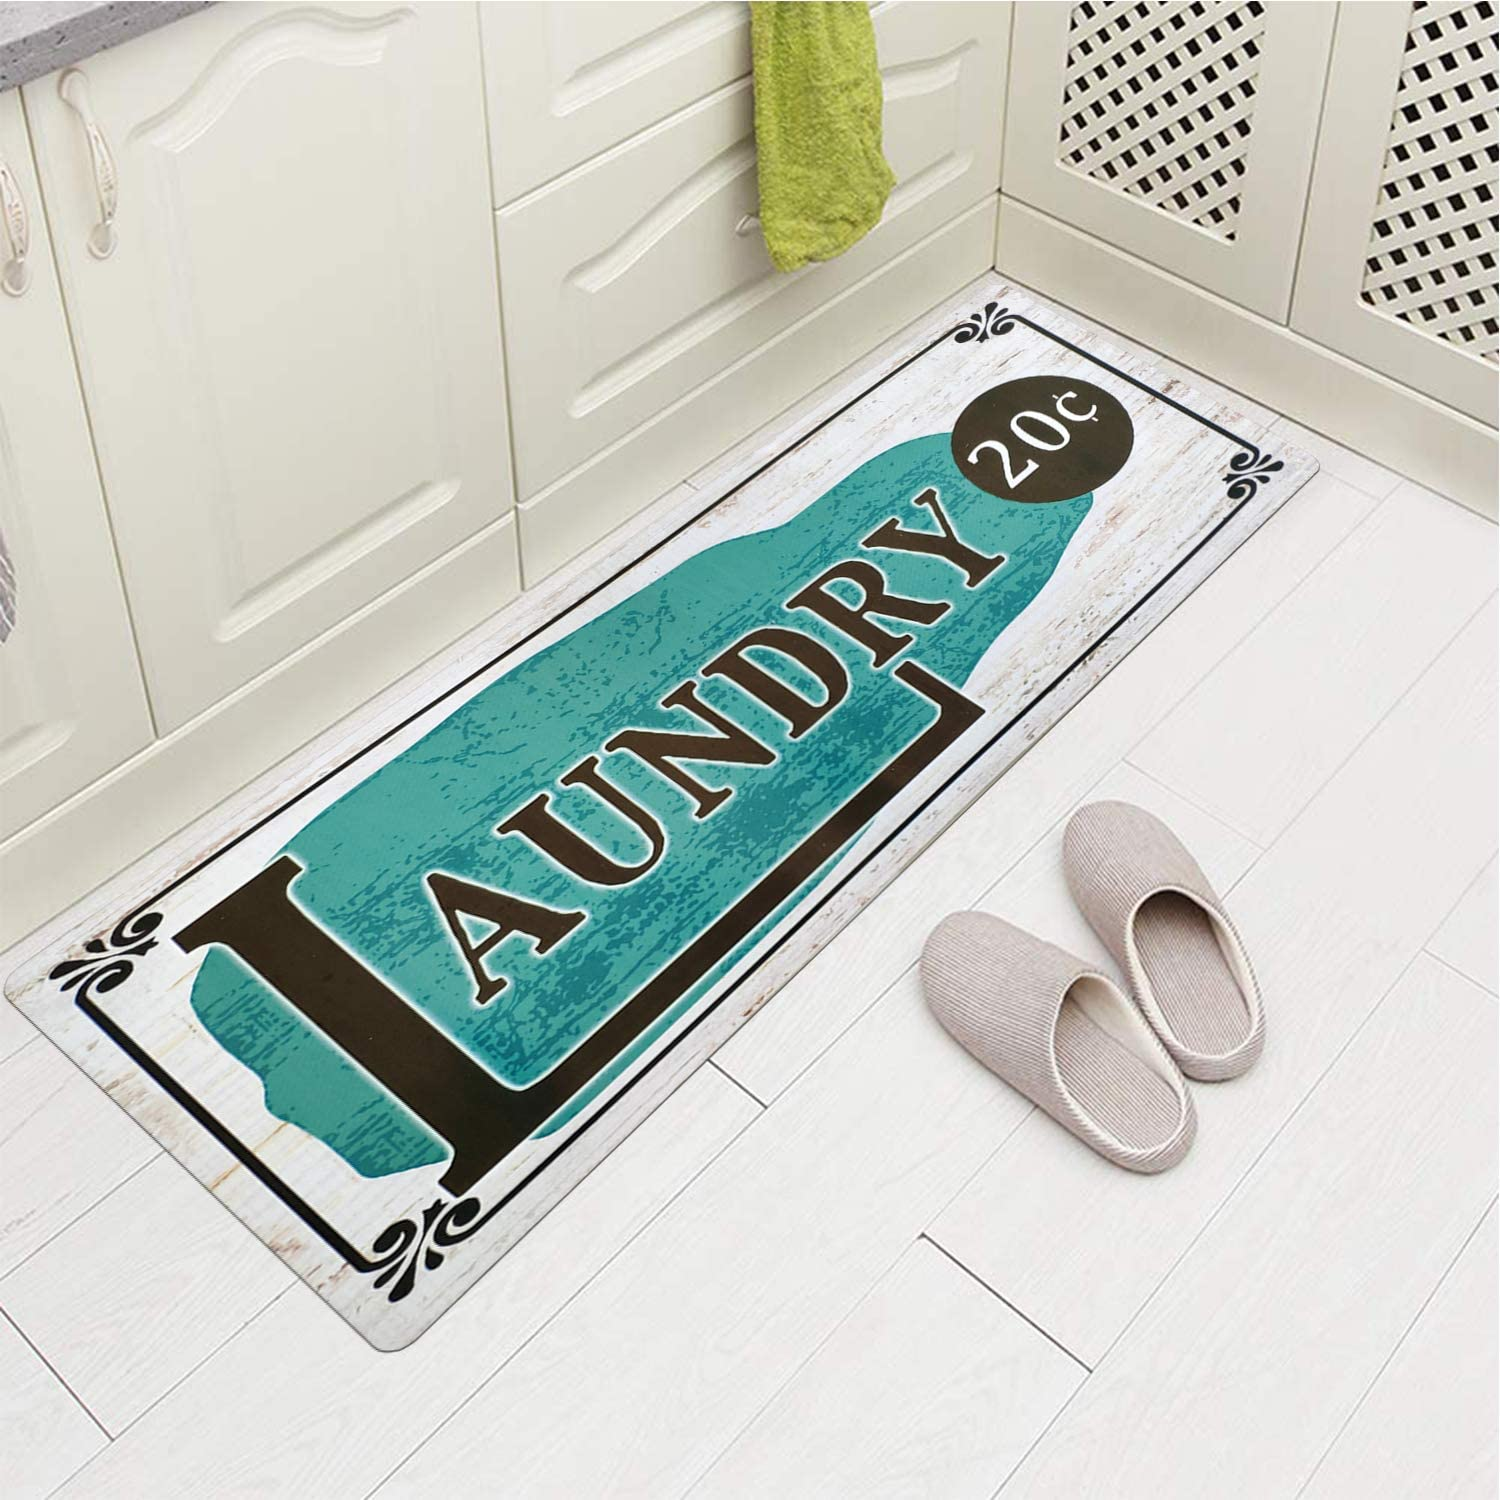 Satbuy Laundry Rug, Non Skid Laundry Room Wash House Mat Waterproof Floor Runners for Bath Room 20''x59''